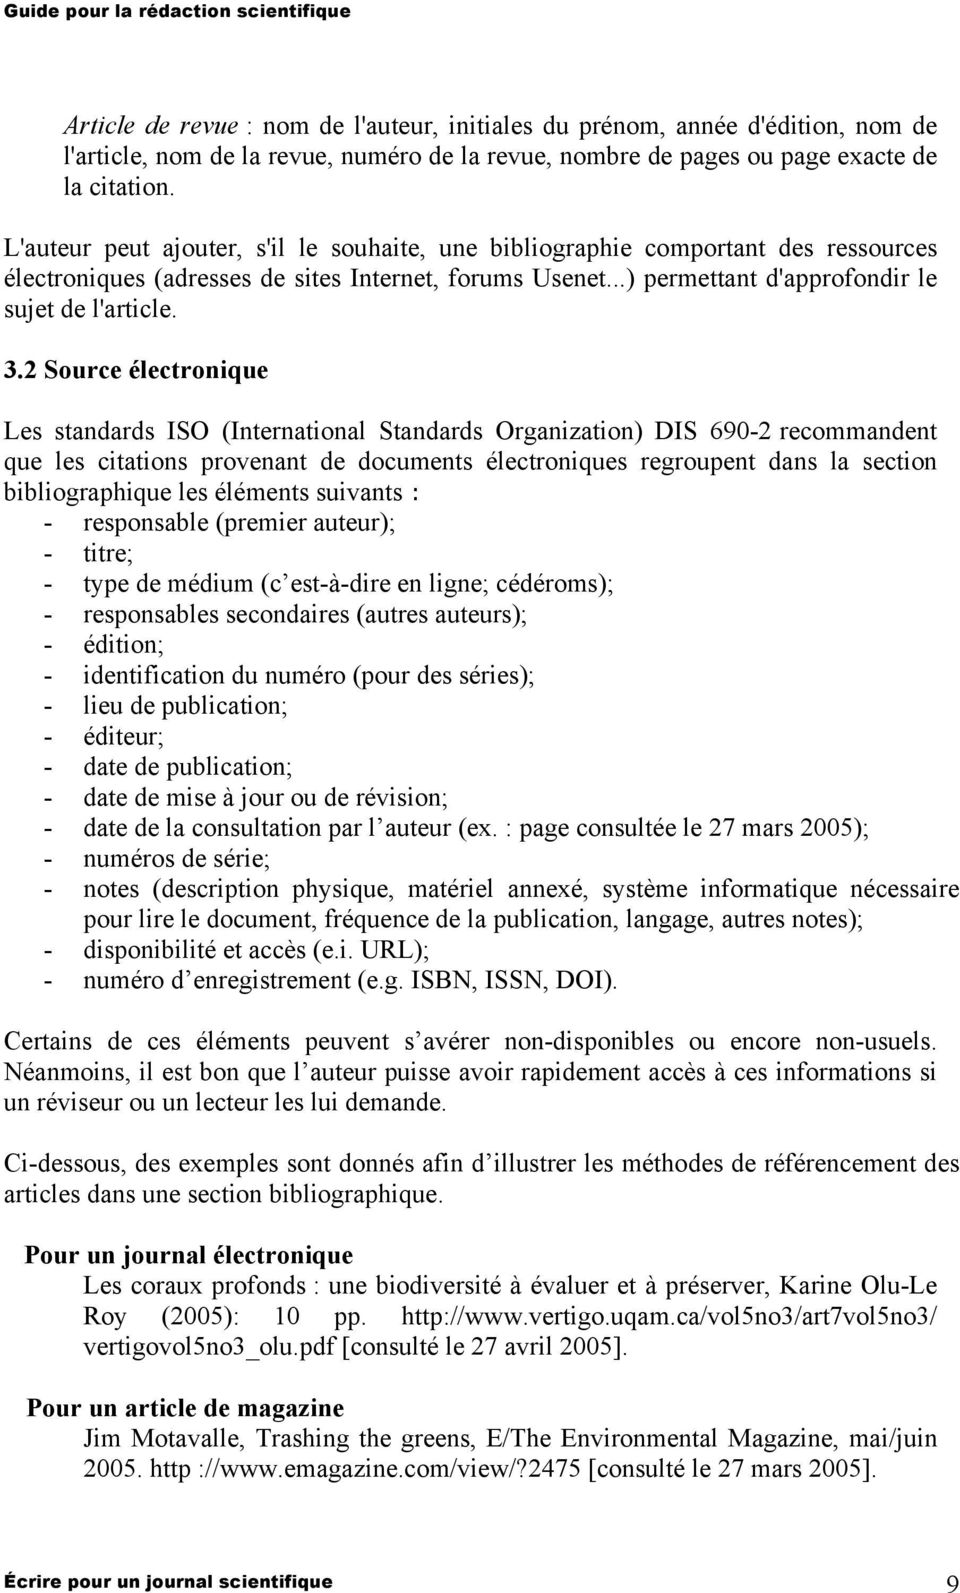 2 Source électronique Les standards ISO (International Standards Organization) DIS 690-2 recommandent que les citations provenant de documents électroniques regroupent dans la section bibliographique